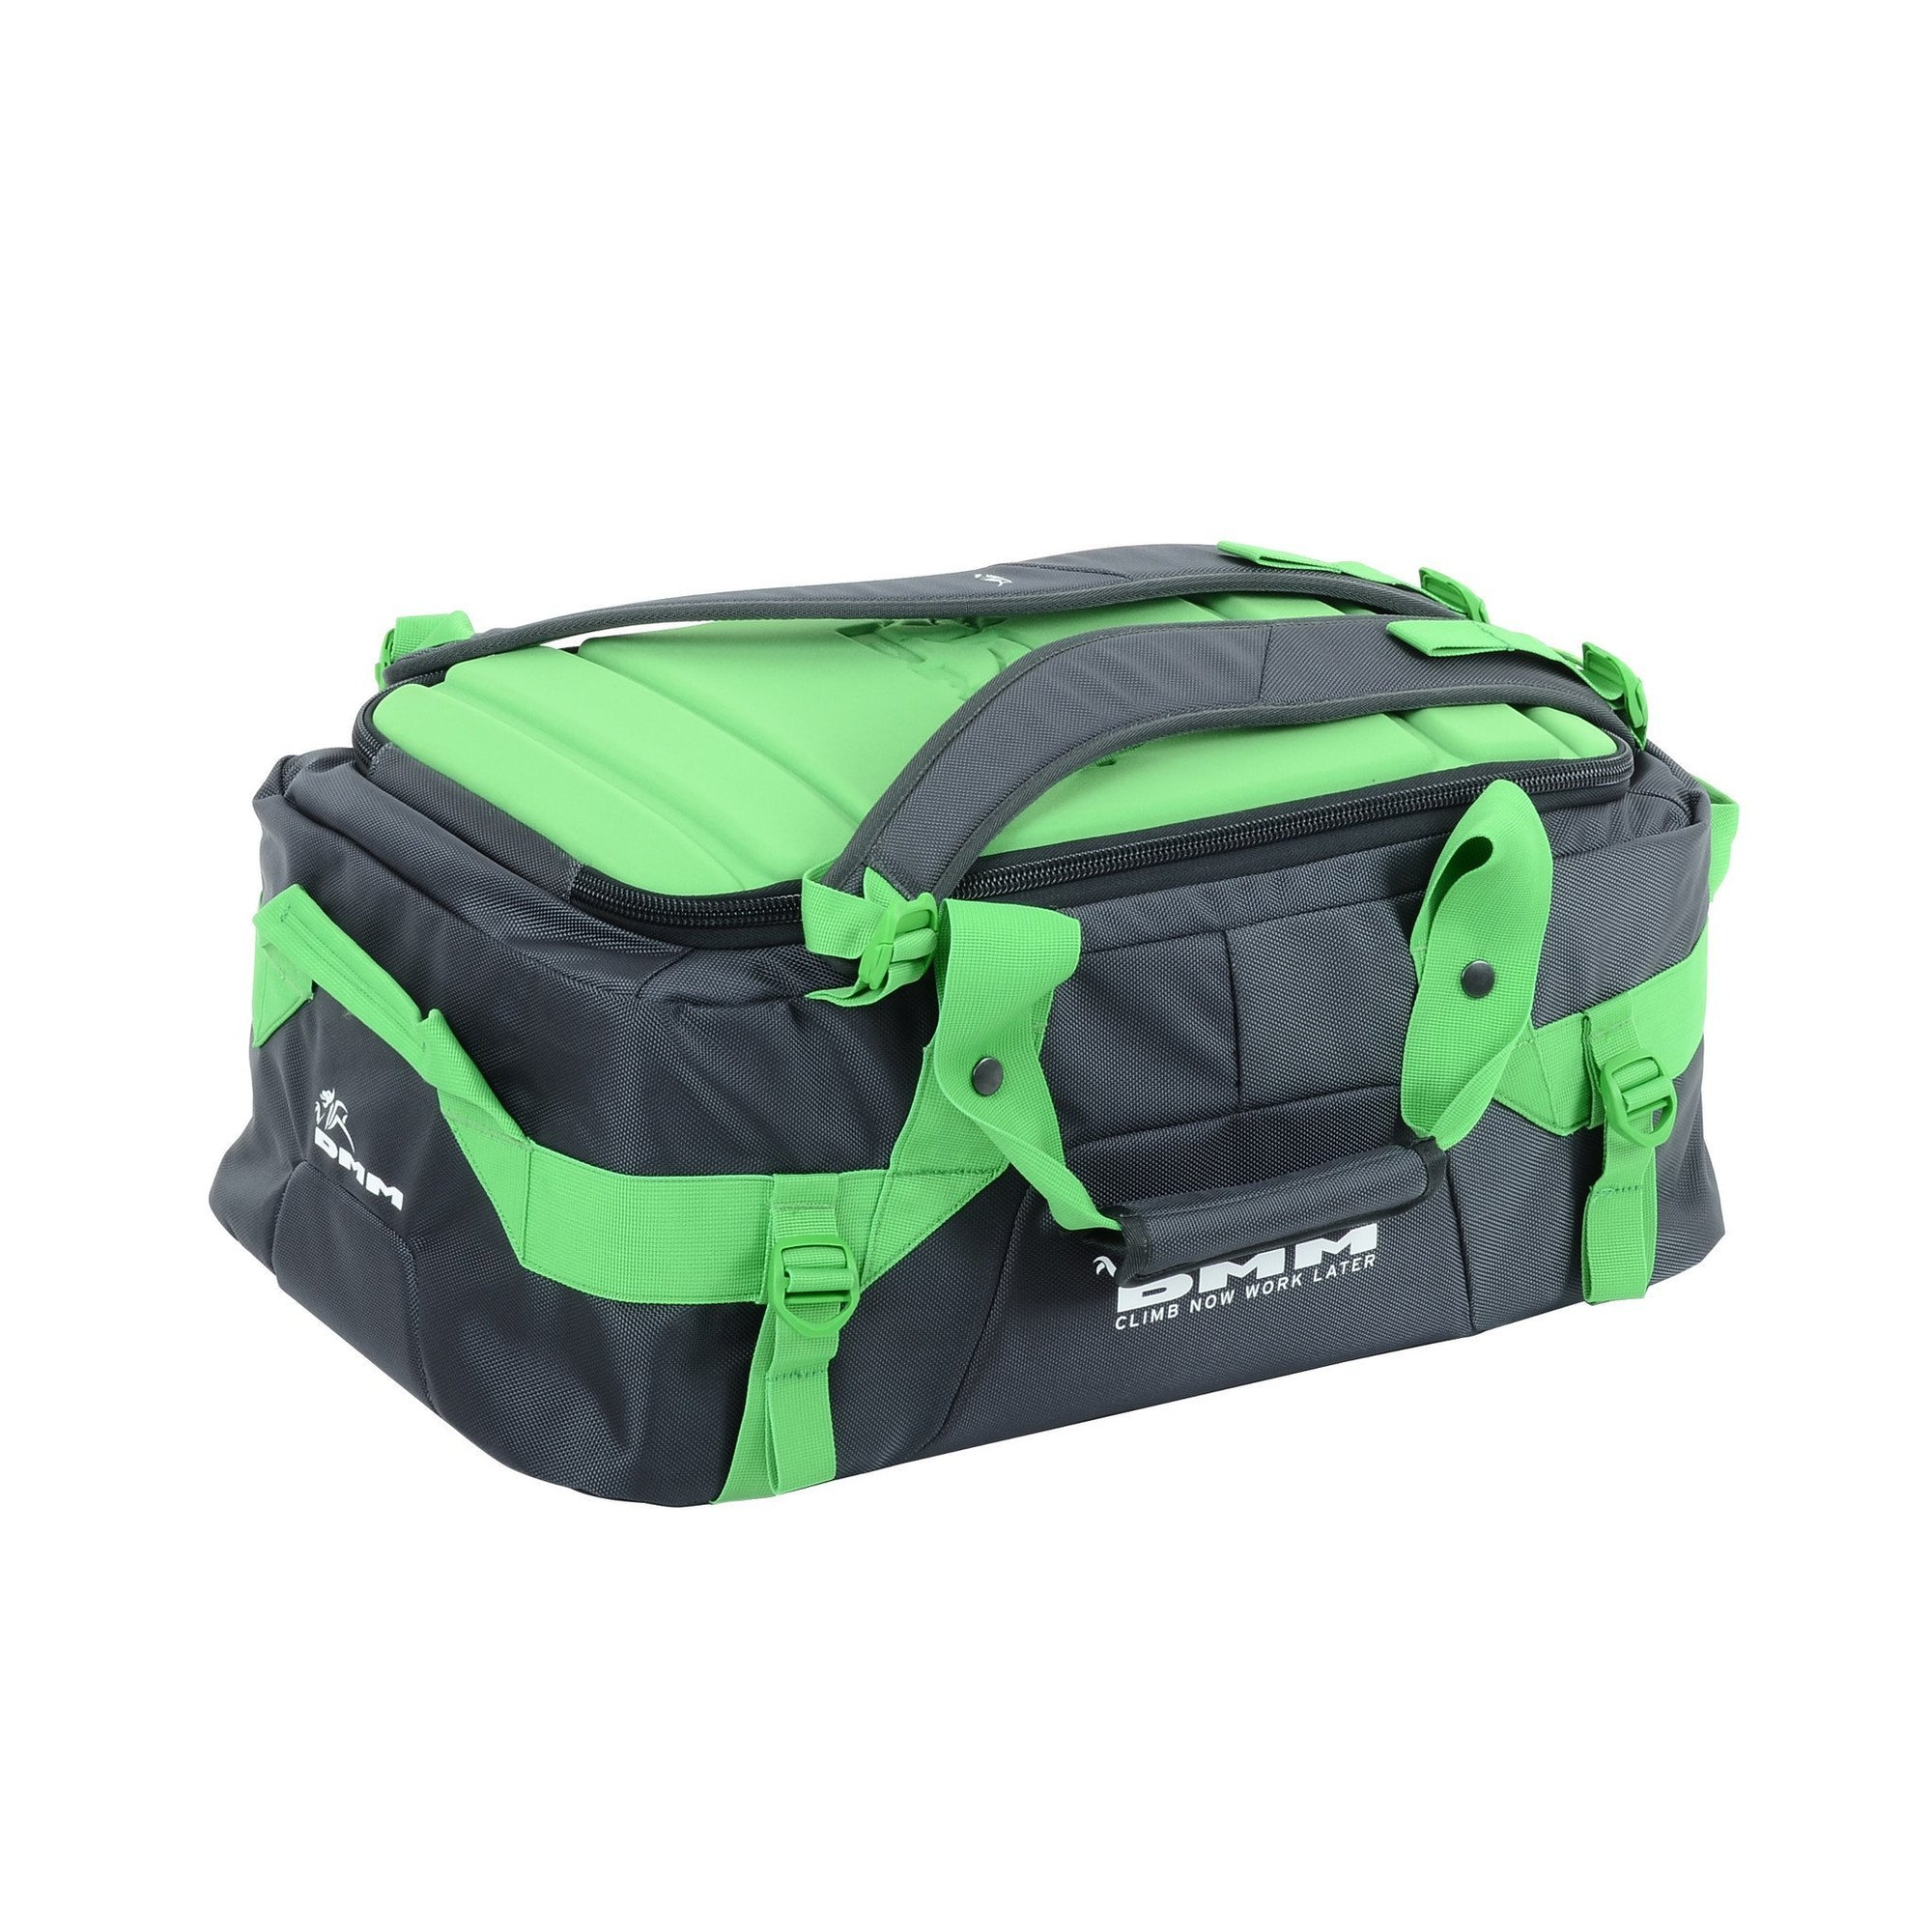 DMM Void climbing Duffel bag 45L, shown flat in carry mode